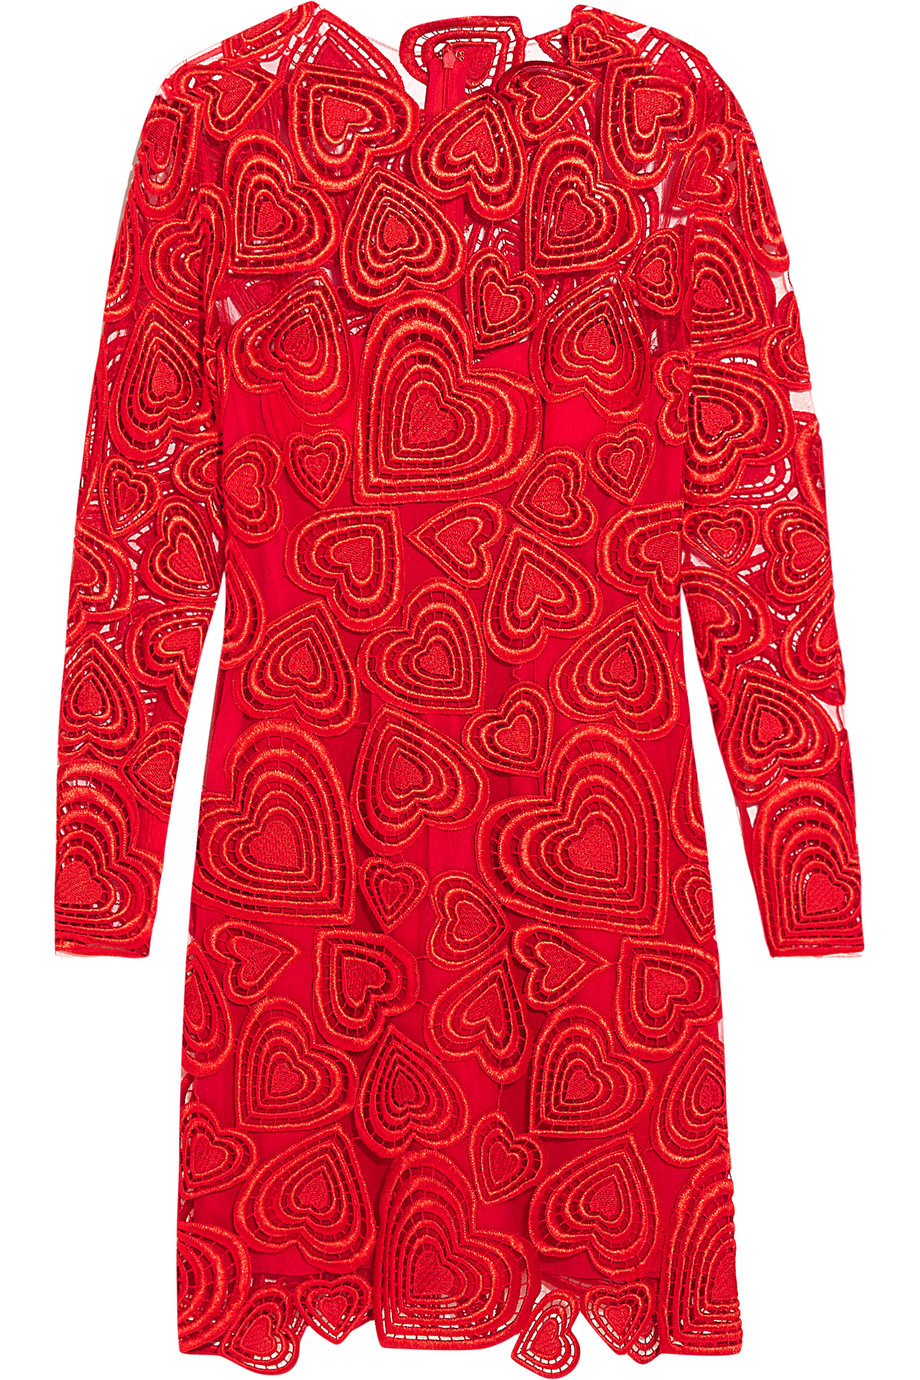 Lara Guipure Lace Mini Dress, Christopher Kane, Red, Women's, Size: 8